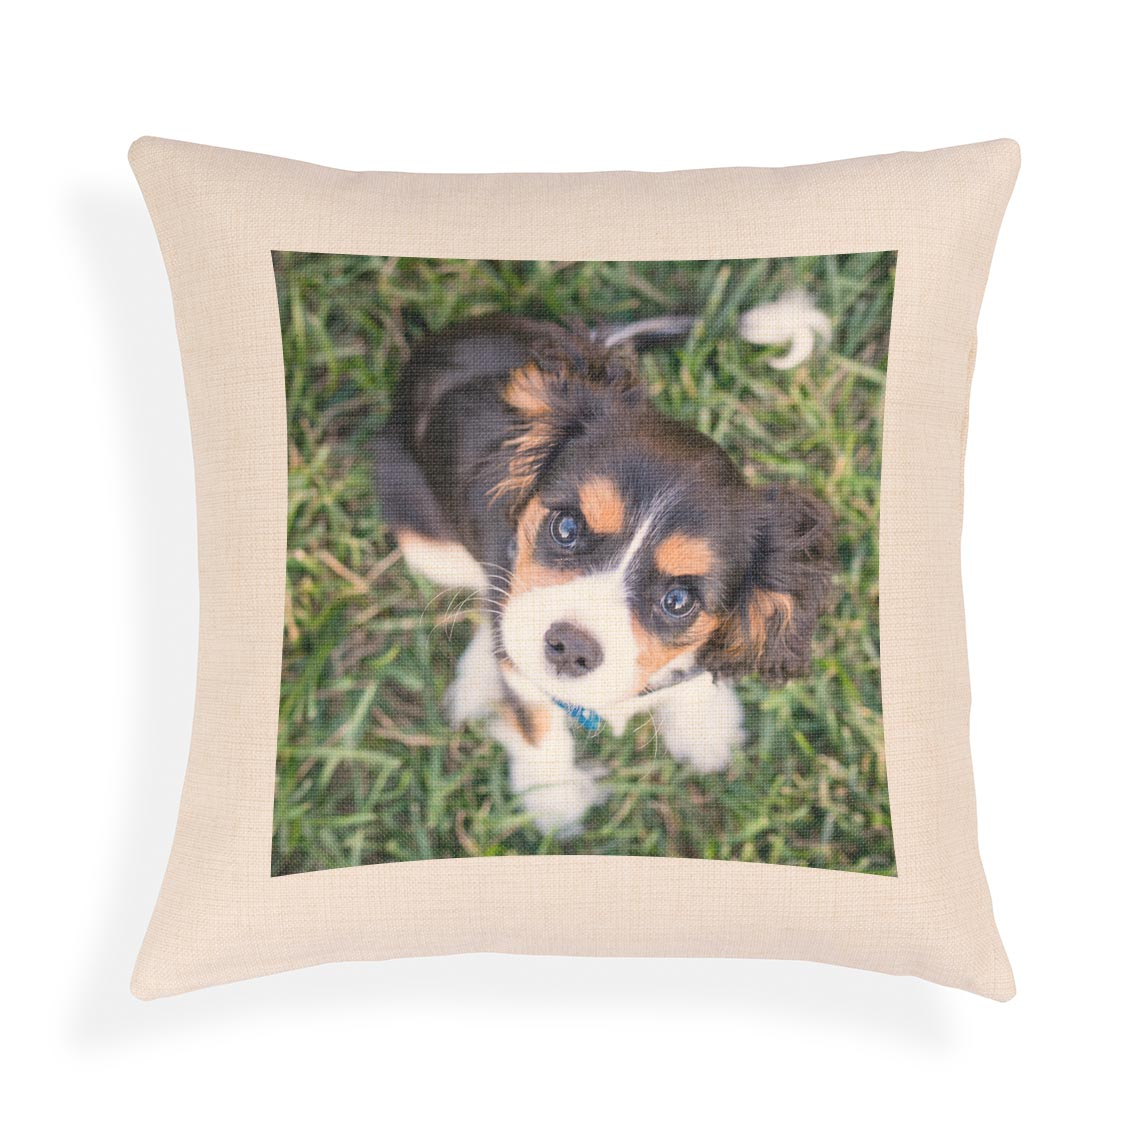 40x40cm Canvas Cushion Cover